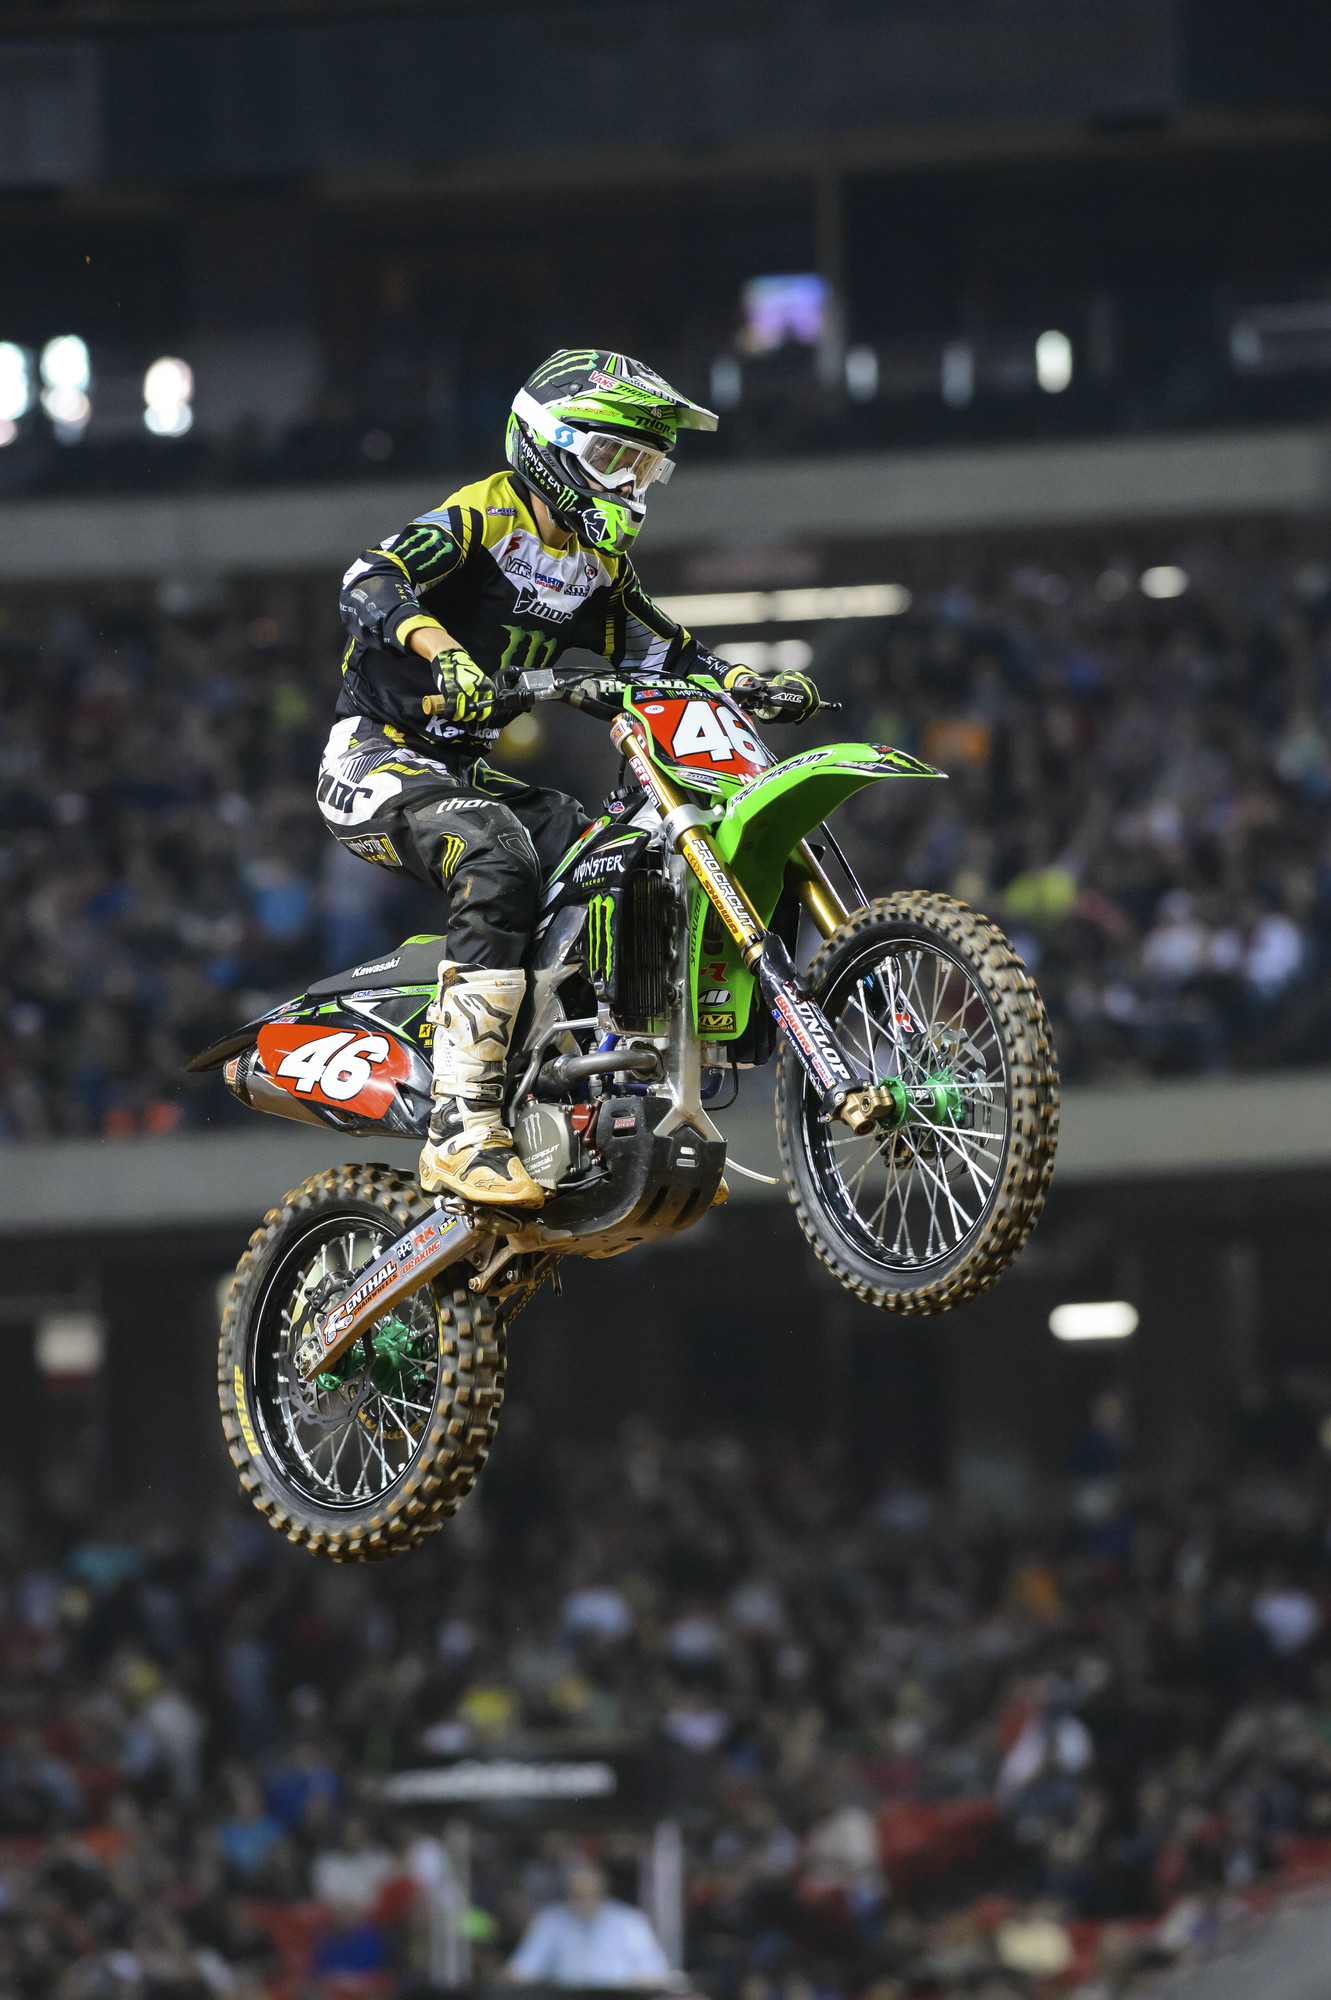 Cianciarulo-AtlantaSX_News_2014_MOTOSPORTS_SCOTT Sports_EN.jpg